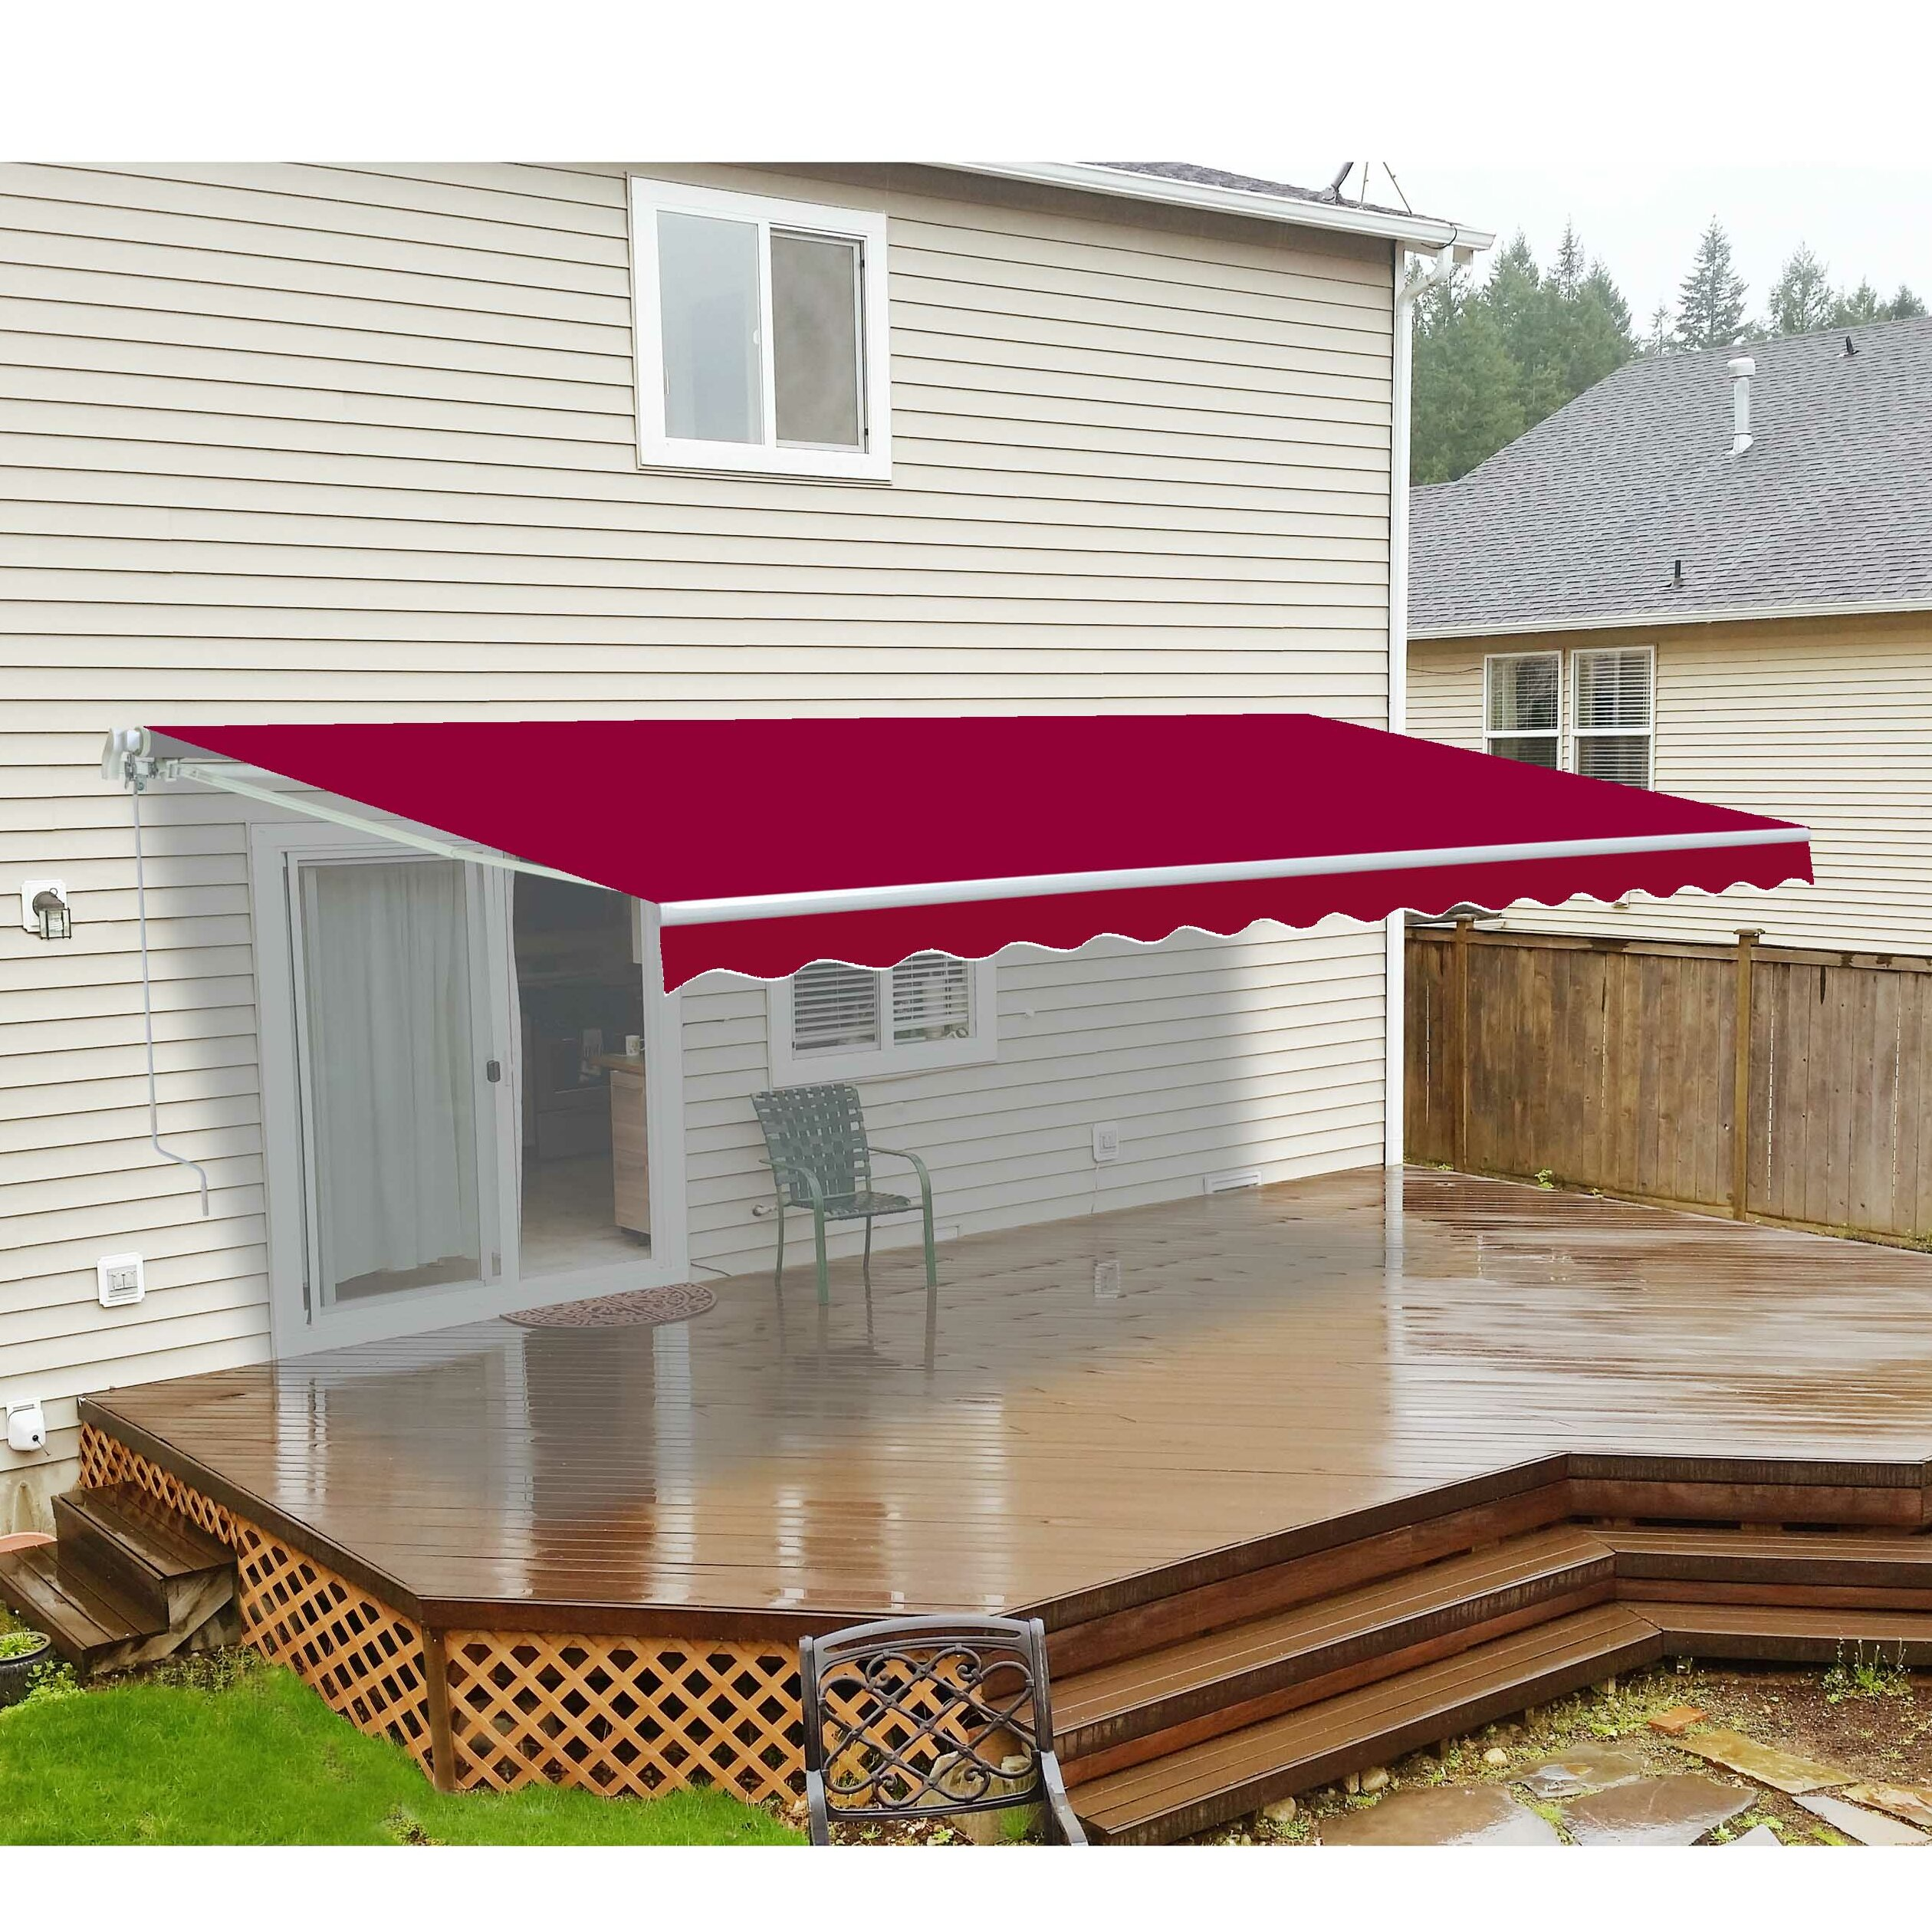 or cassette patio domestic full open after semi private awnings recover acrylic awning material in motorised house